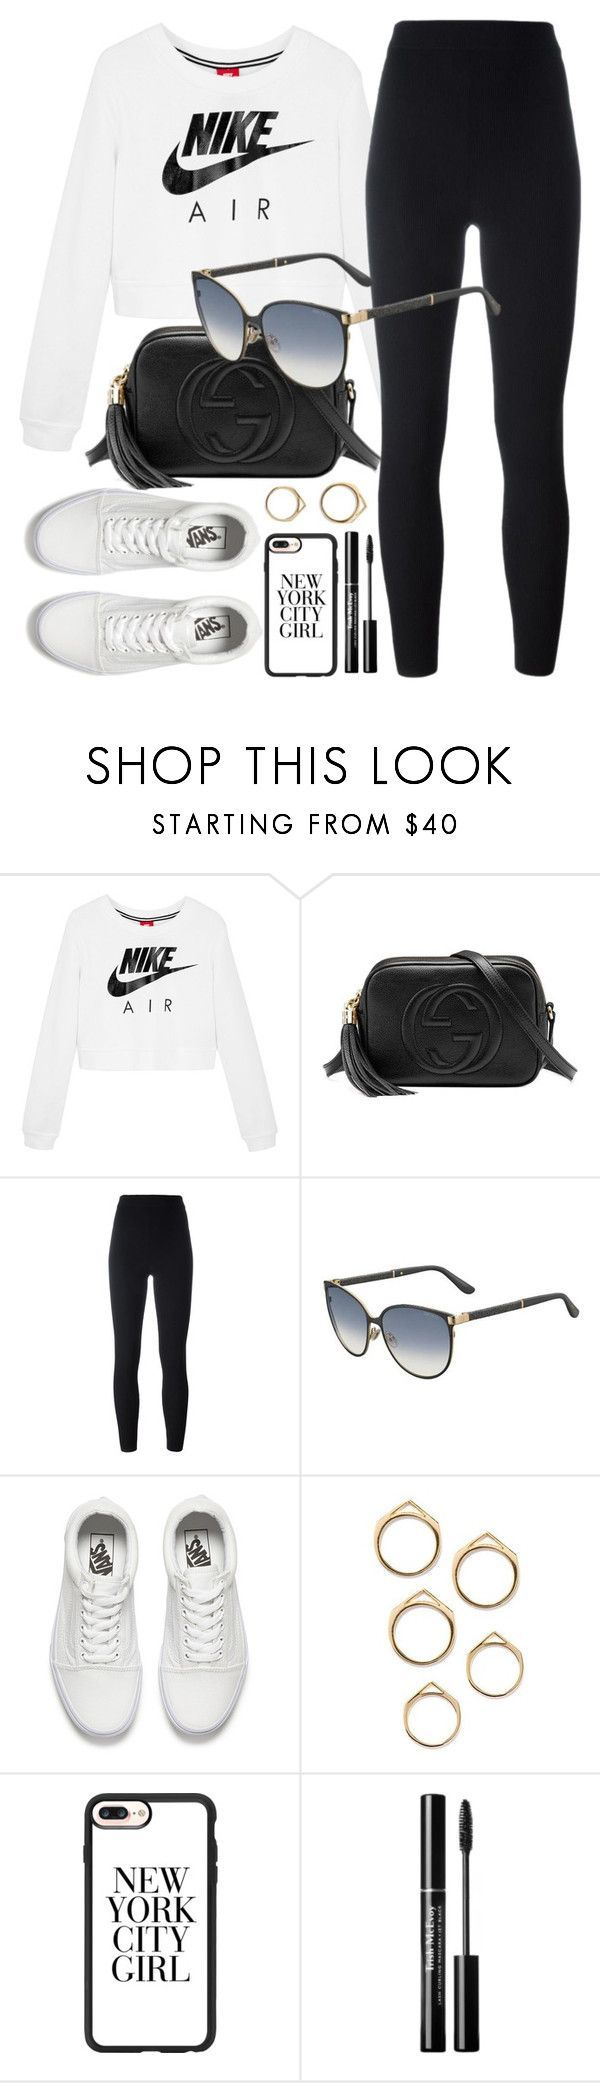 """Sporty"" by smartbuyglasses ❤ liked on Polyvore featuring NIKE, Gucci, adidas Originals, Jimmy Choo, Vans, Casetify, white, black and sporty Get a $100 Adidas Gift Card!  Adidas, Adidas Sneakers, Adidas Outlet, Adidas Nmd, Adidas Shoes, Adidas Apparel, Adidas Boost, Adidas Boost Shoes, Adidas Clothing, Adidas Dress, Adidas Essentials, Adidas Kids, Adidas Leggings, Adidas Nmd Runner, Adidas Quality, Adidas Superstar, Adidas Store, Adidas Vs Nike, Adidas Zipper, Adidas Zappos, Adidas, Adidas…"